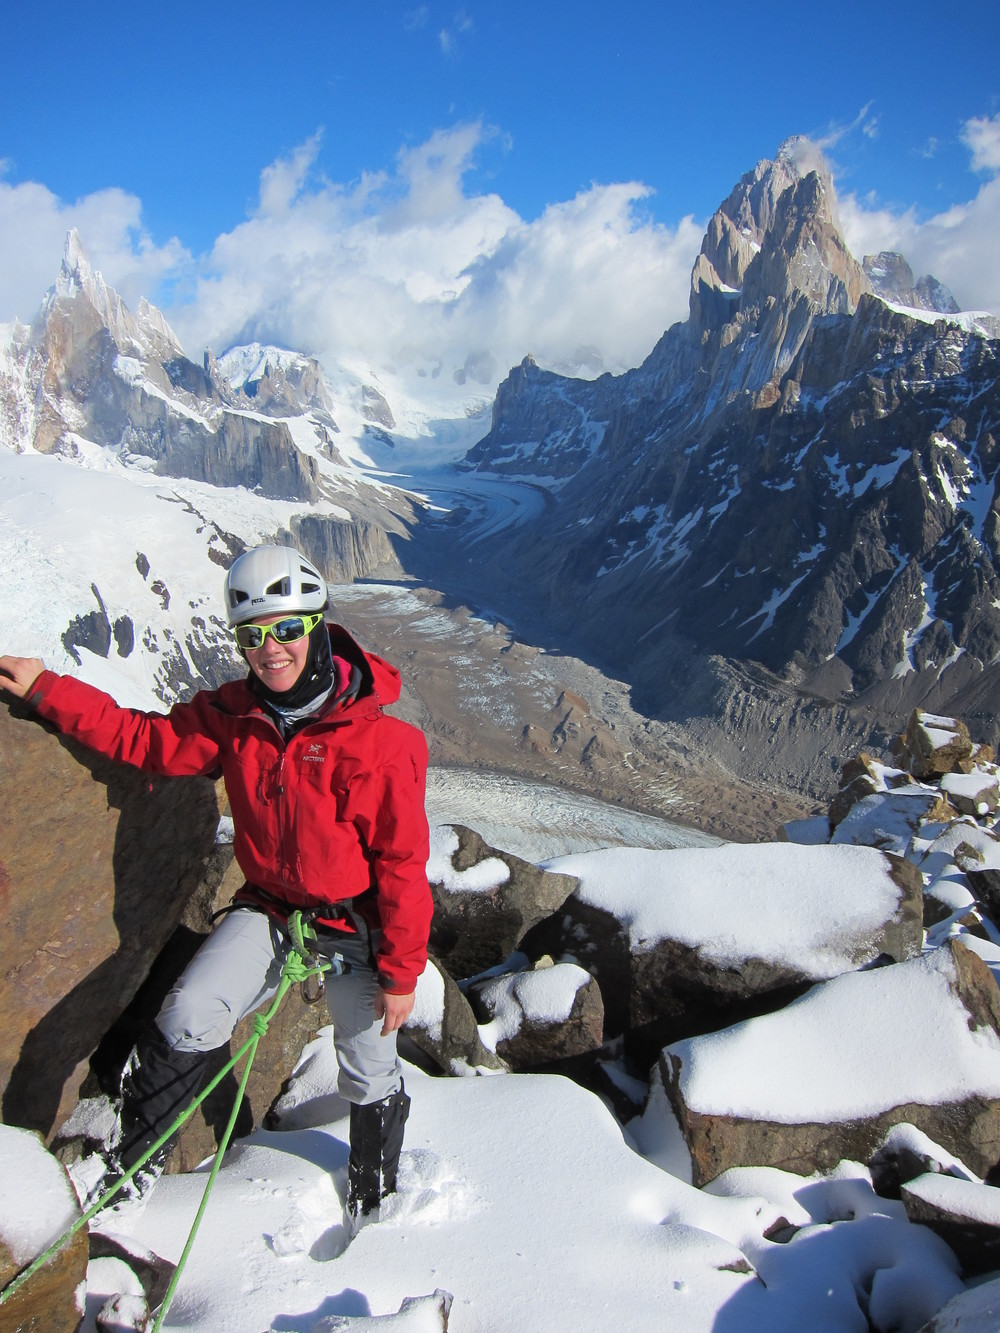 En route the summit of Cerro Solo with Cerro Torre and Fitz Roy in the background.